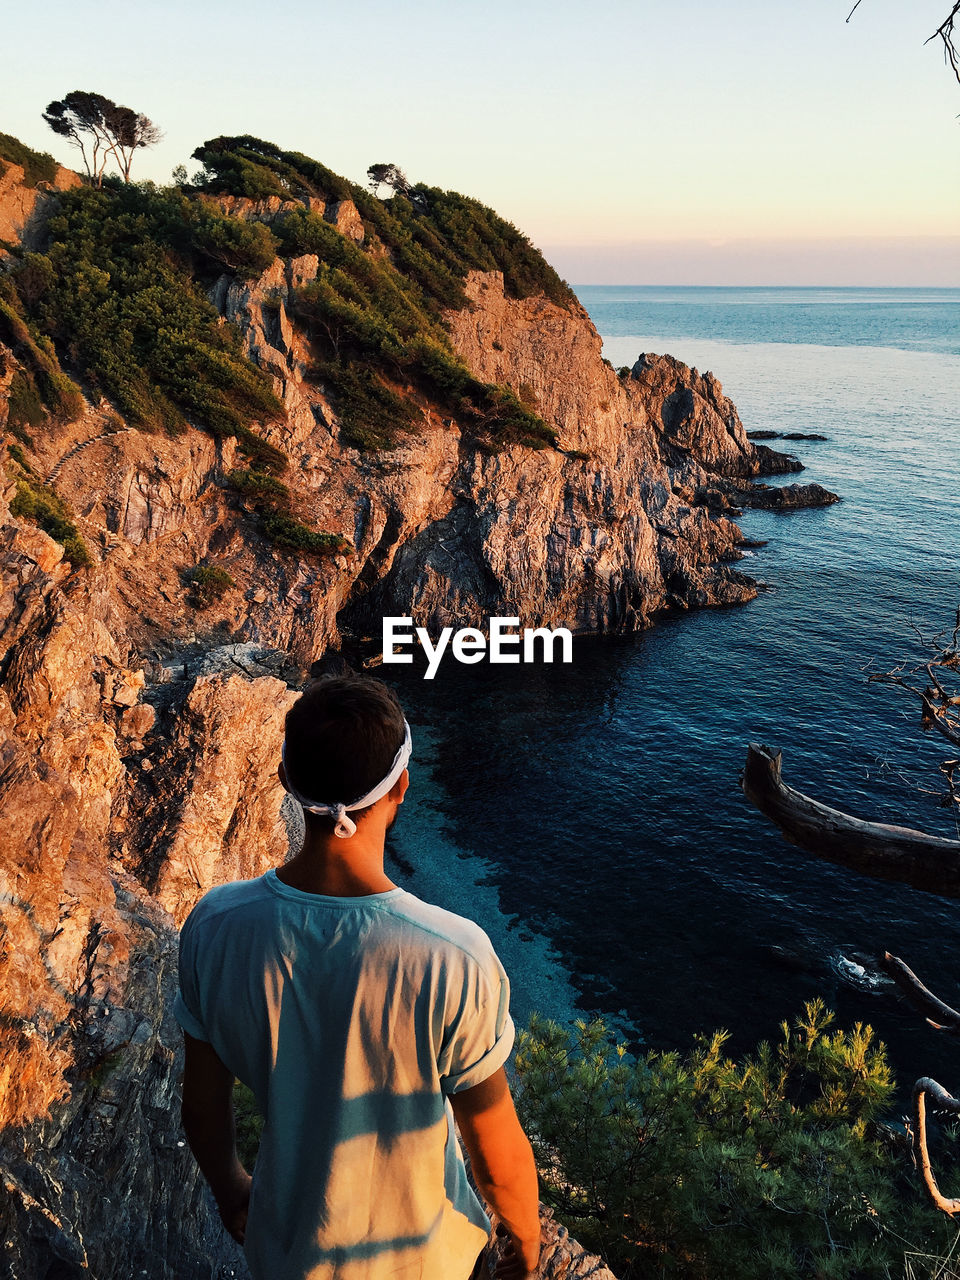 water, sea, beauty in nature, rock, leisure activity, rock - object, one person, solid, sky, scenics - nature, lifestyles, real people, nature, men, rock formation, casual clothing, tranquility, tranquil scene, horizon over water, looking at view, outdoors